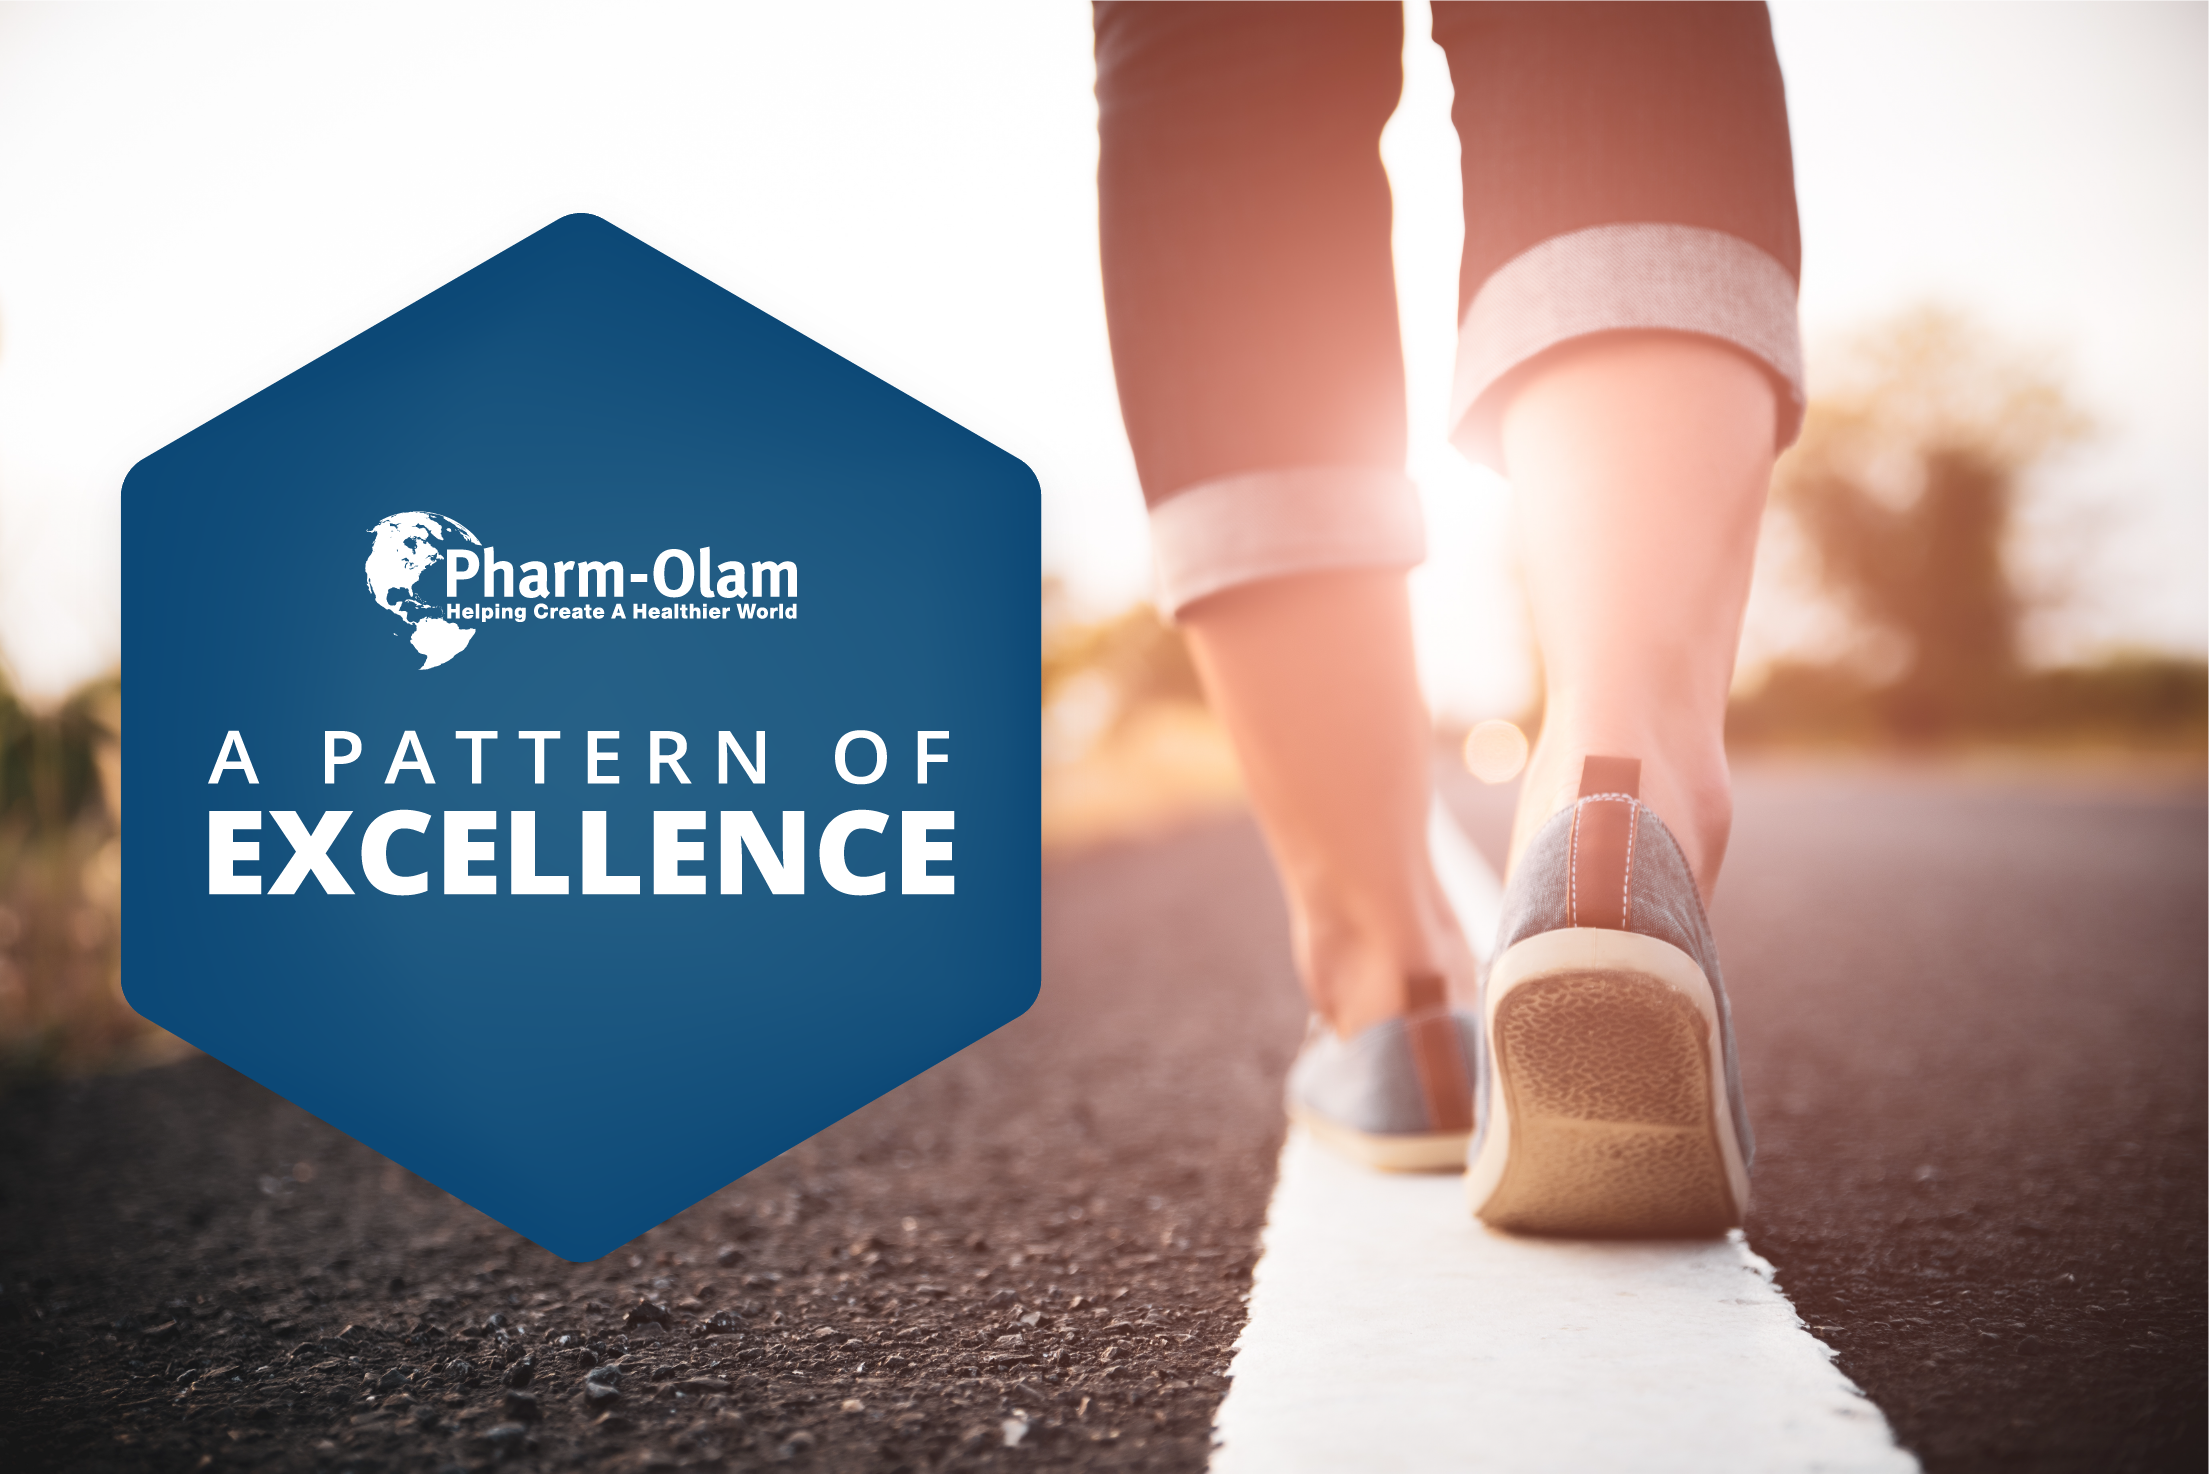 Walking the Pattern of Excellence